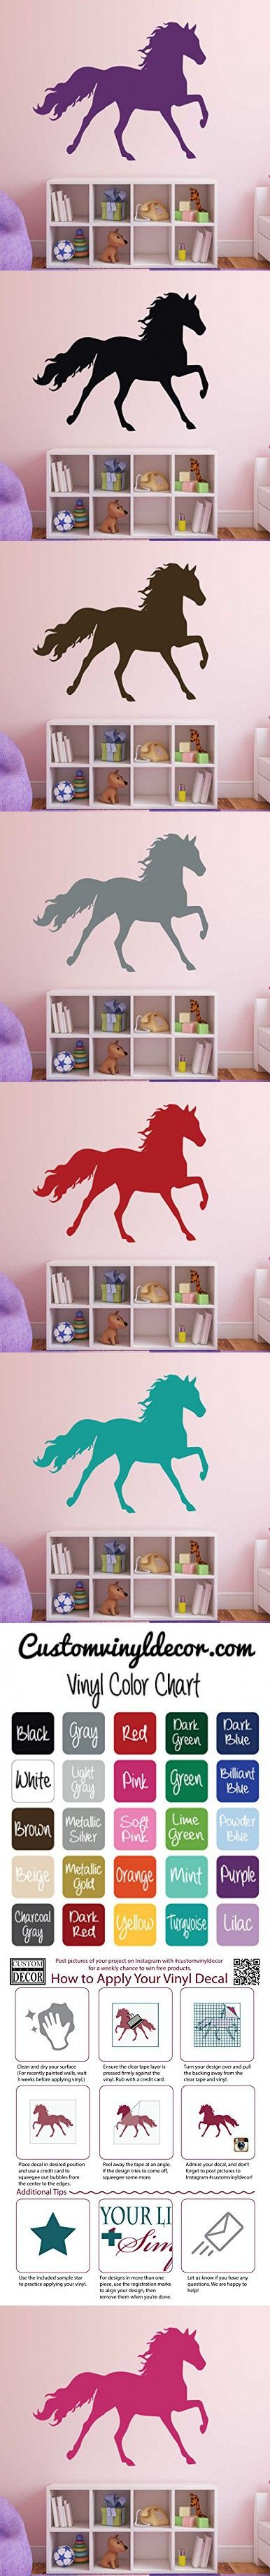 Best 25 horse wall decals ideas on pinterest horse wall art best 25 horse wall decals ideas on pinterest horse wall art horse rooms and girls horse rooms amipublicfo Image collections